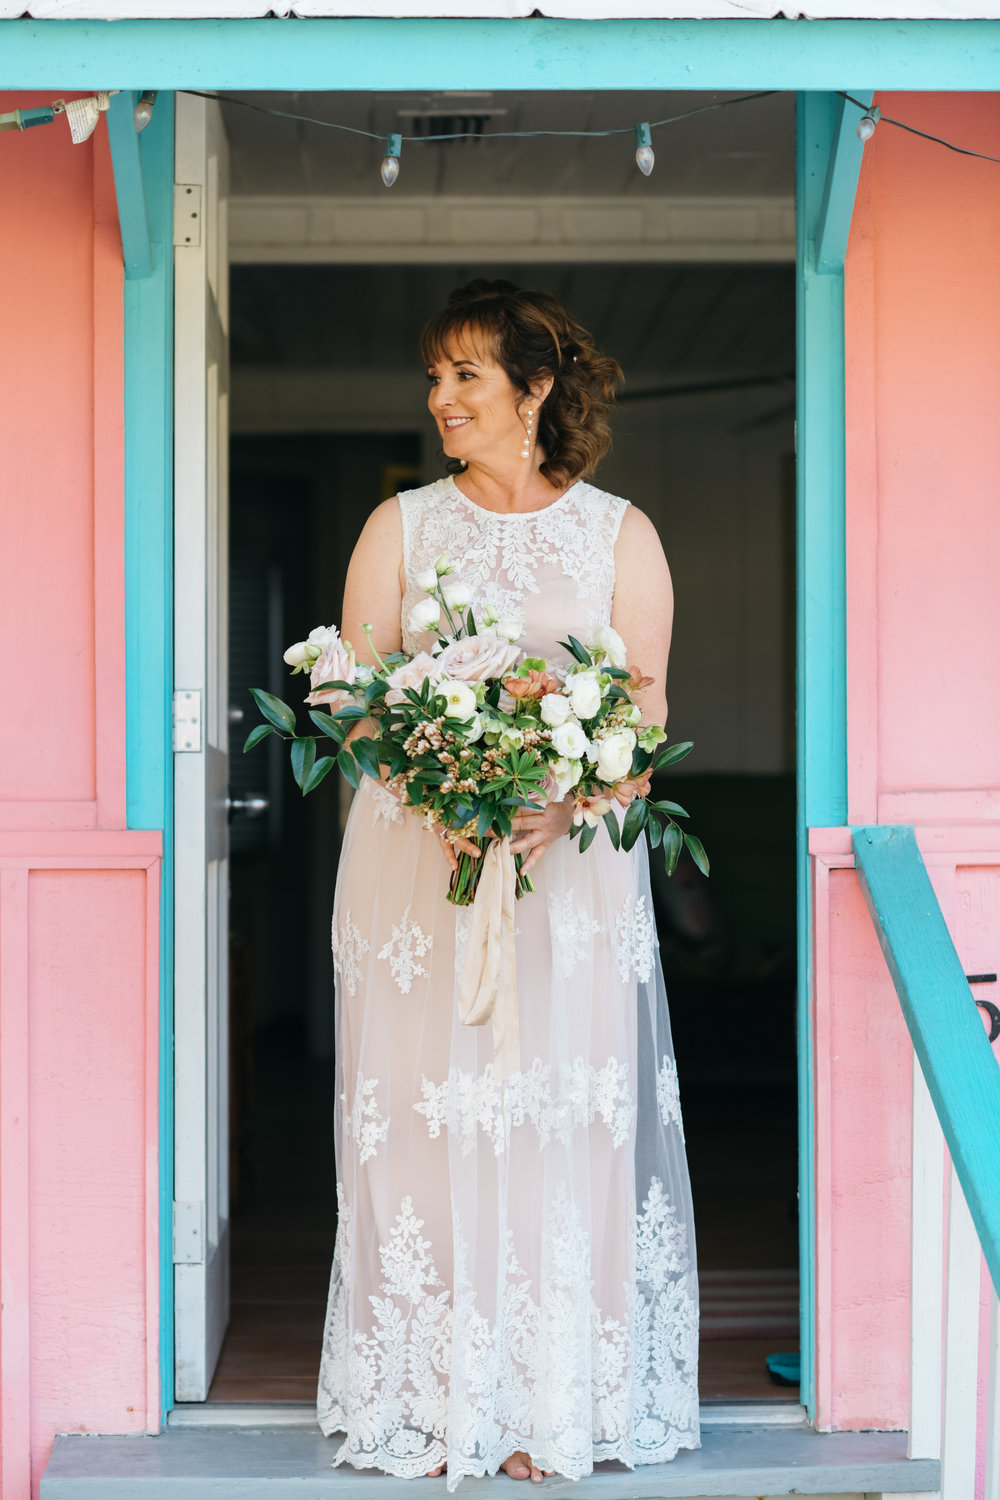 Julie_Bob_Siesta_Key_Wedding_April_2018-17.jpg